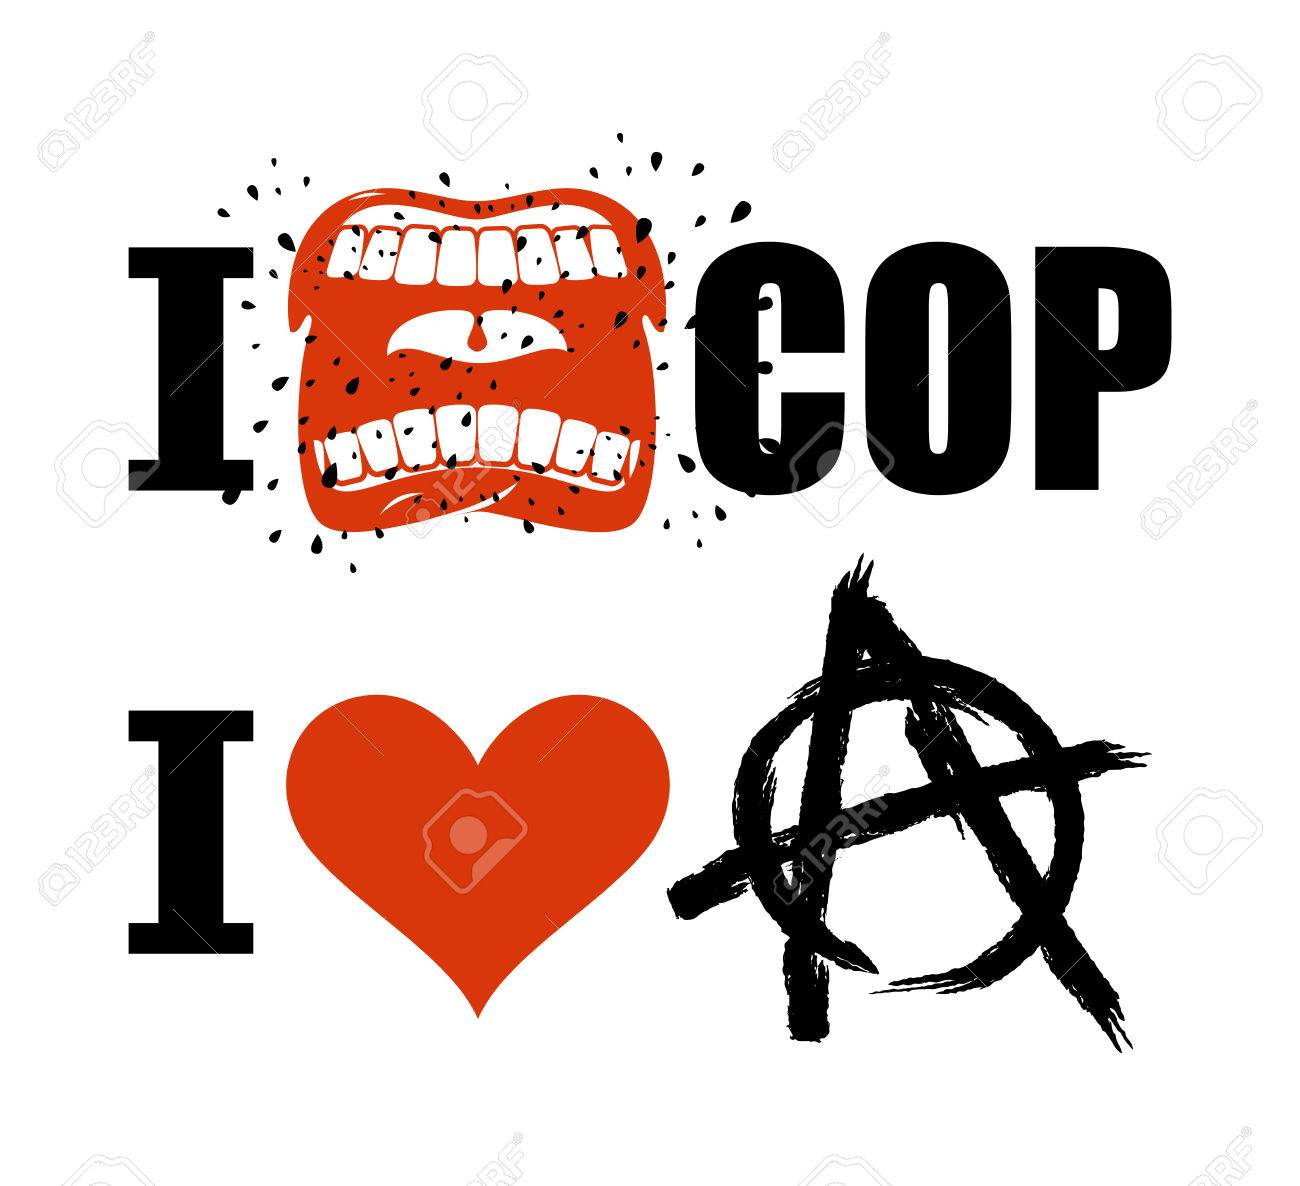 I hate cop loud cry of sign of aggression and hatred for police i hate cop loud cry of sign of aggression and hatred for police i buycottarizona